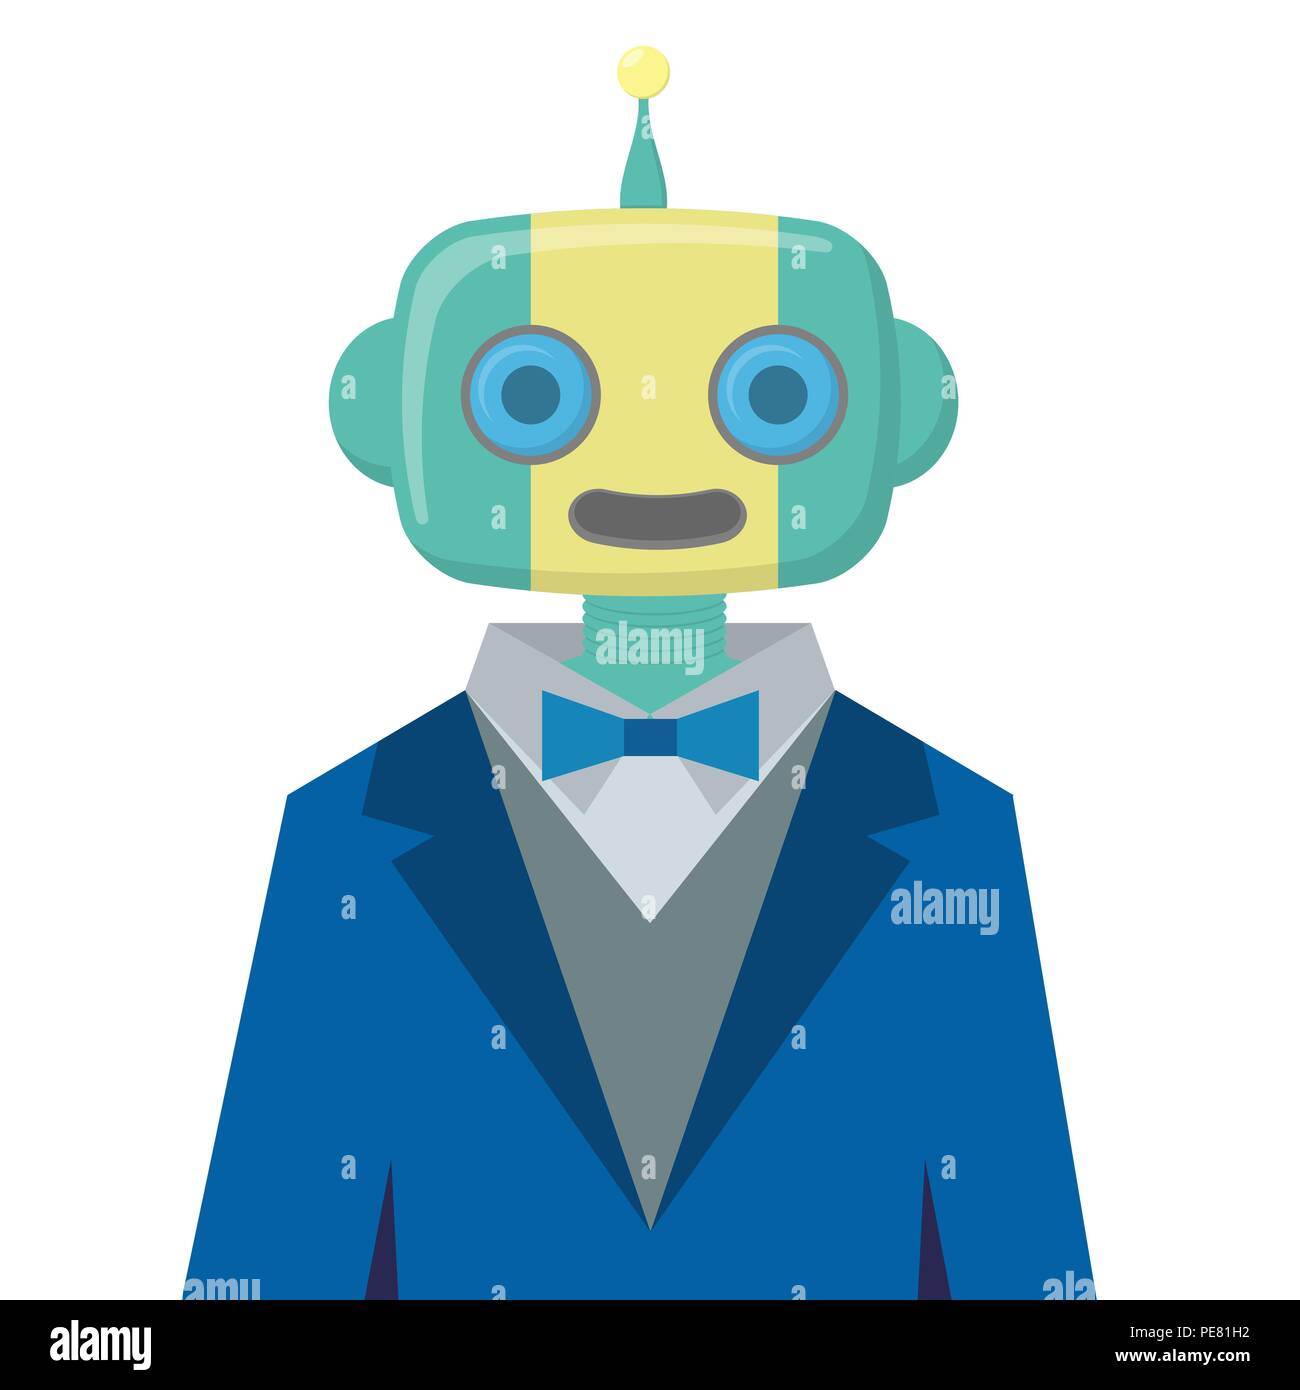 Robot wearing blue suit isolated on white background, artificial intelligence in futuristic technology wallpaper - Stock Image